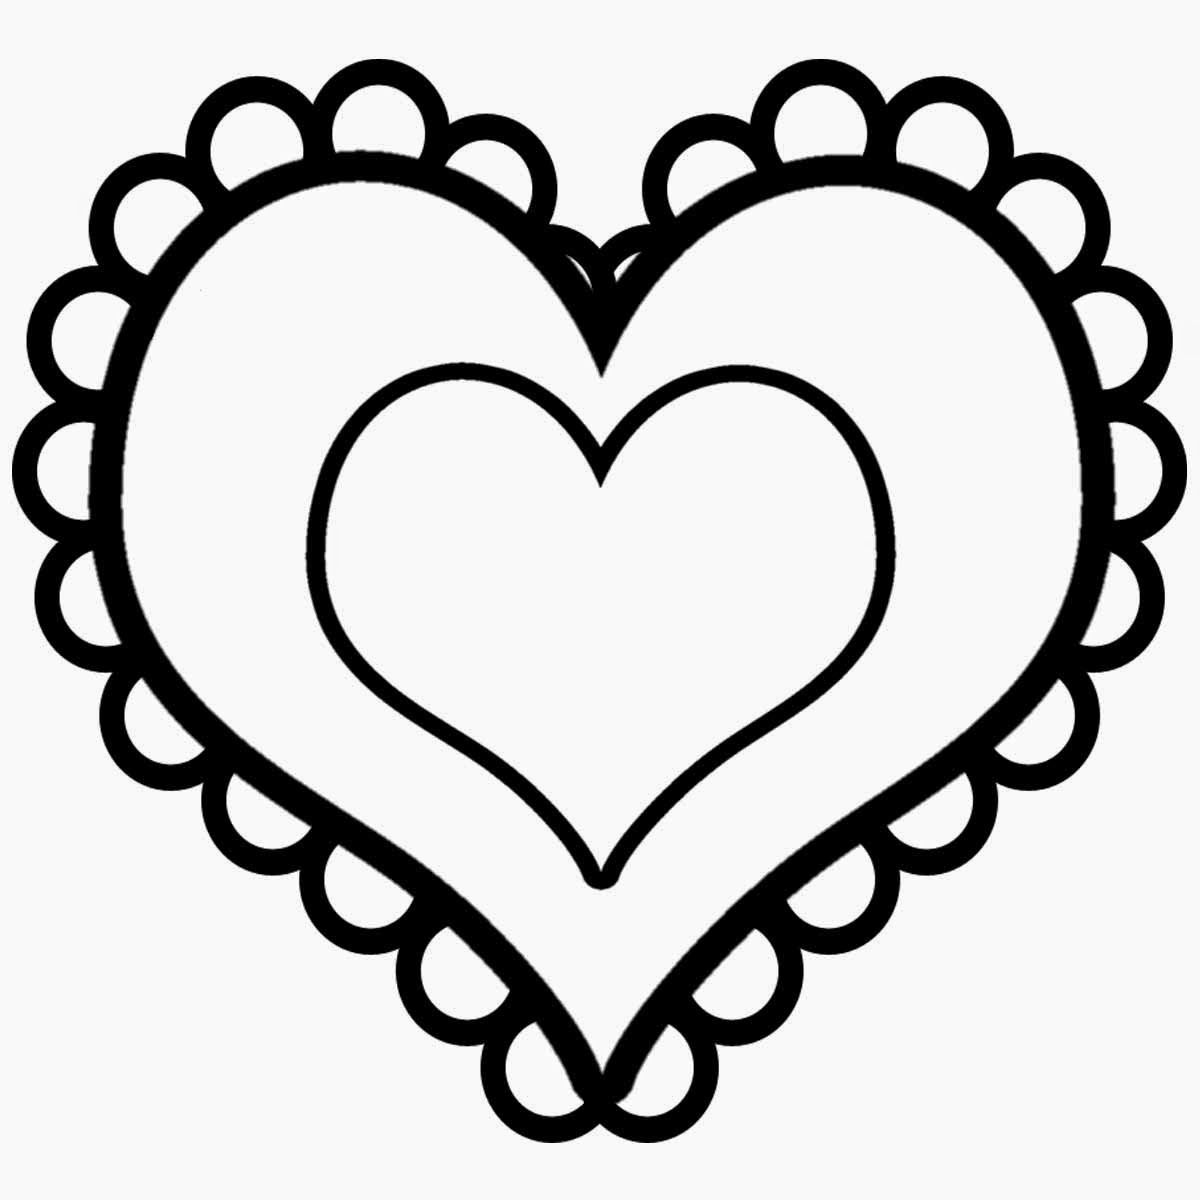 coloring book pictures of hearts 35 free printable heart coloring pages book hearts coloring pictures of